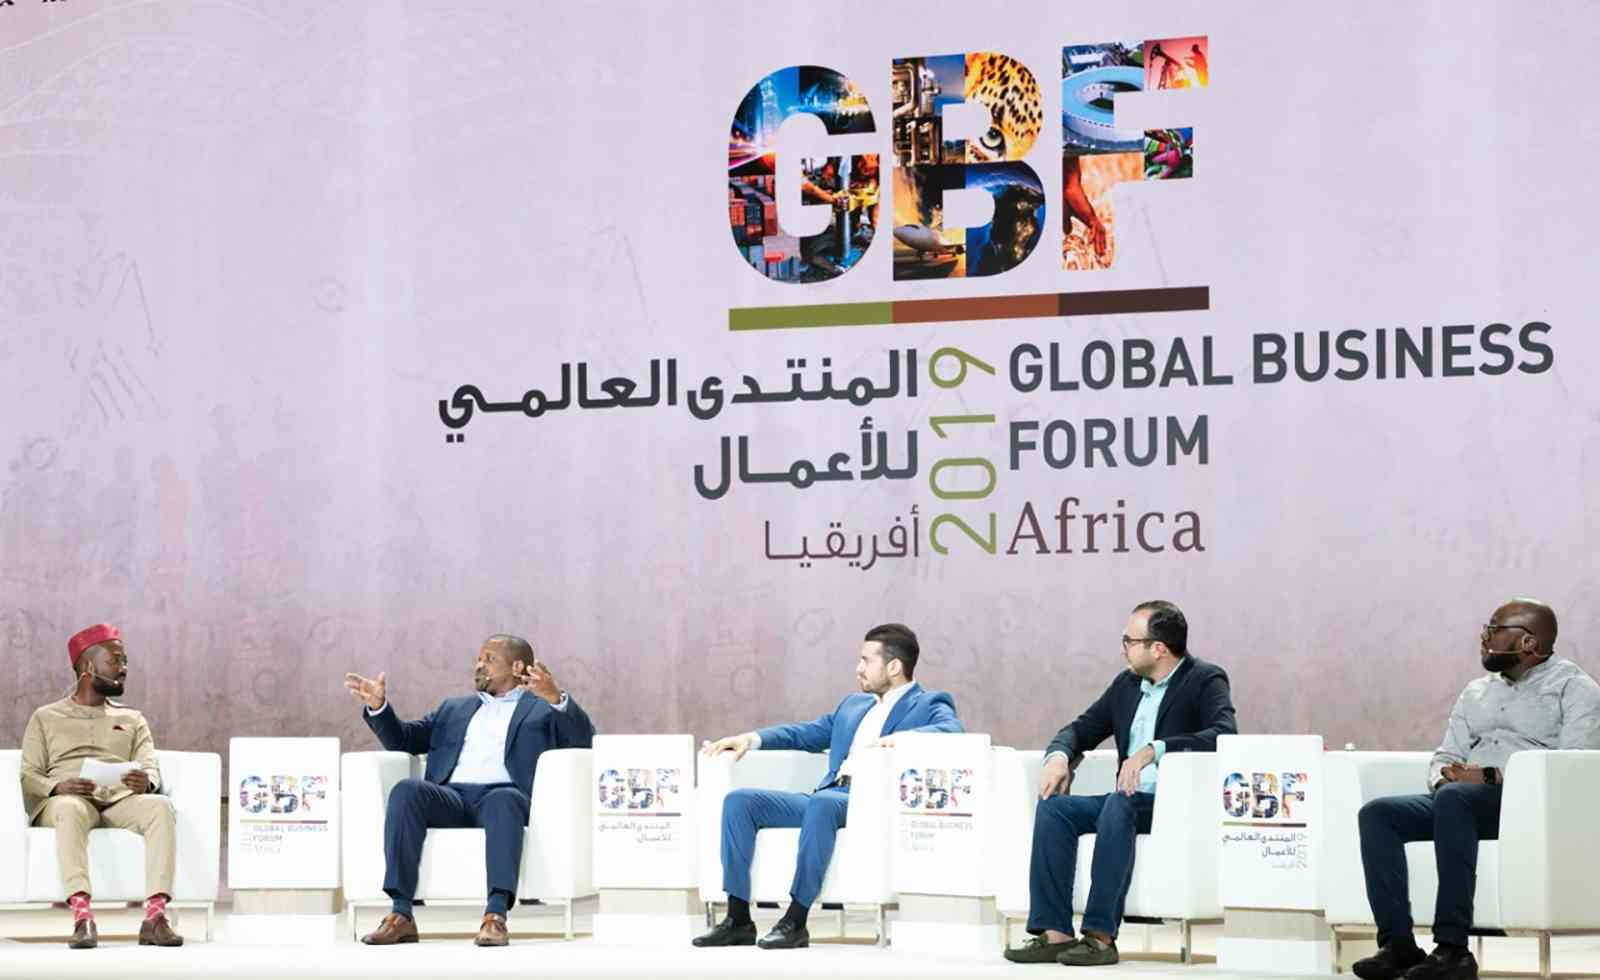 Trade leads the future of economic transformations at the Global African Business Forum